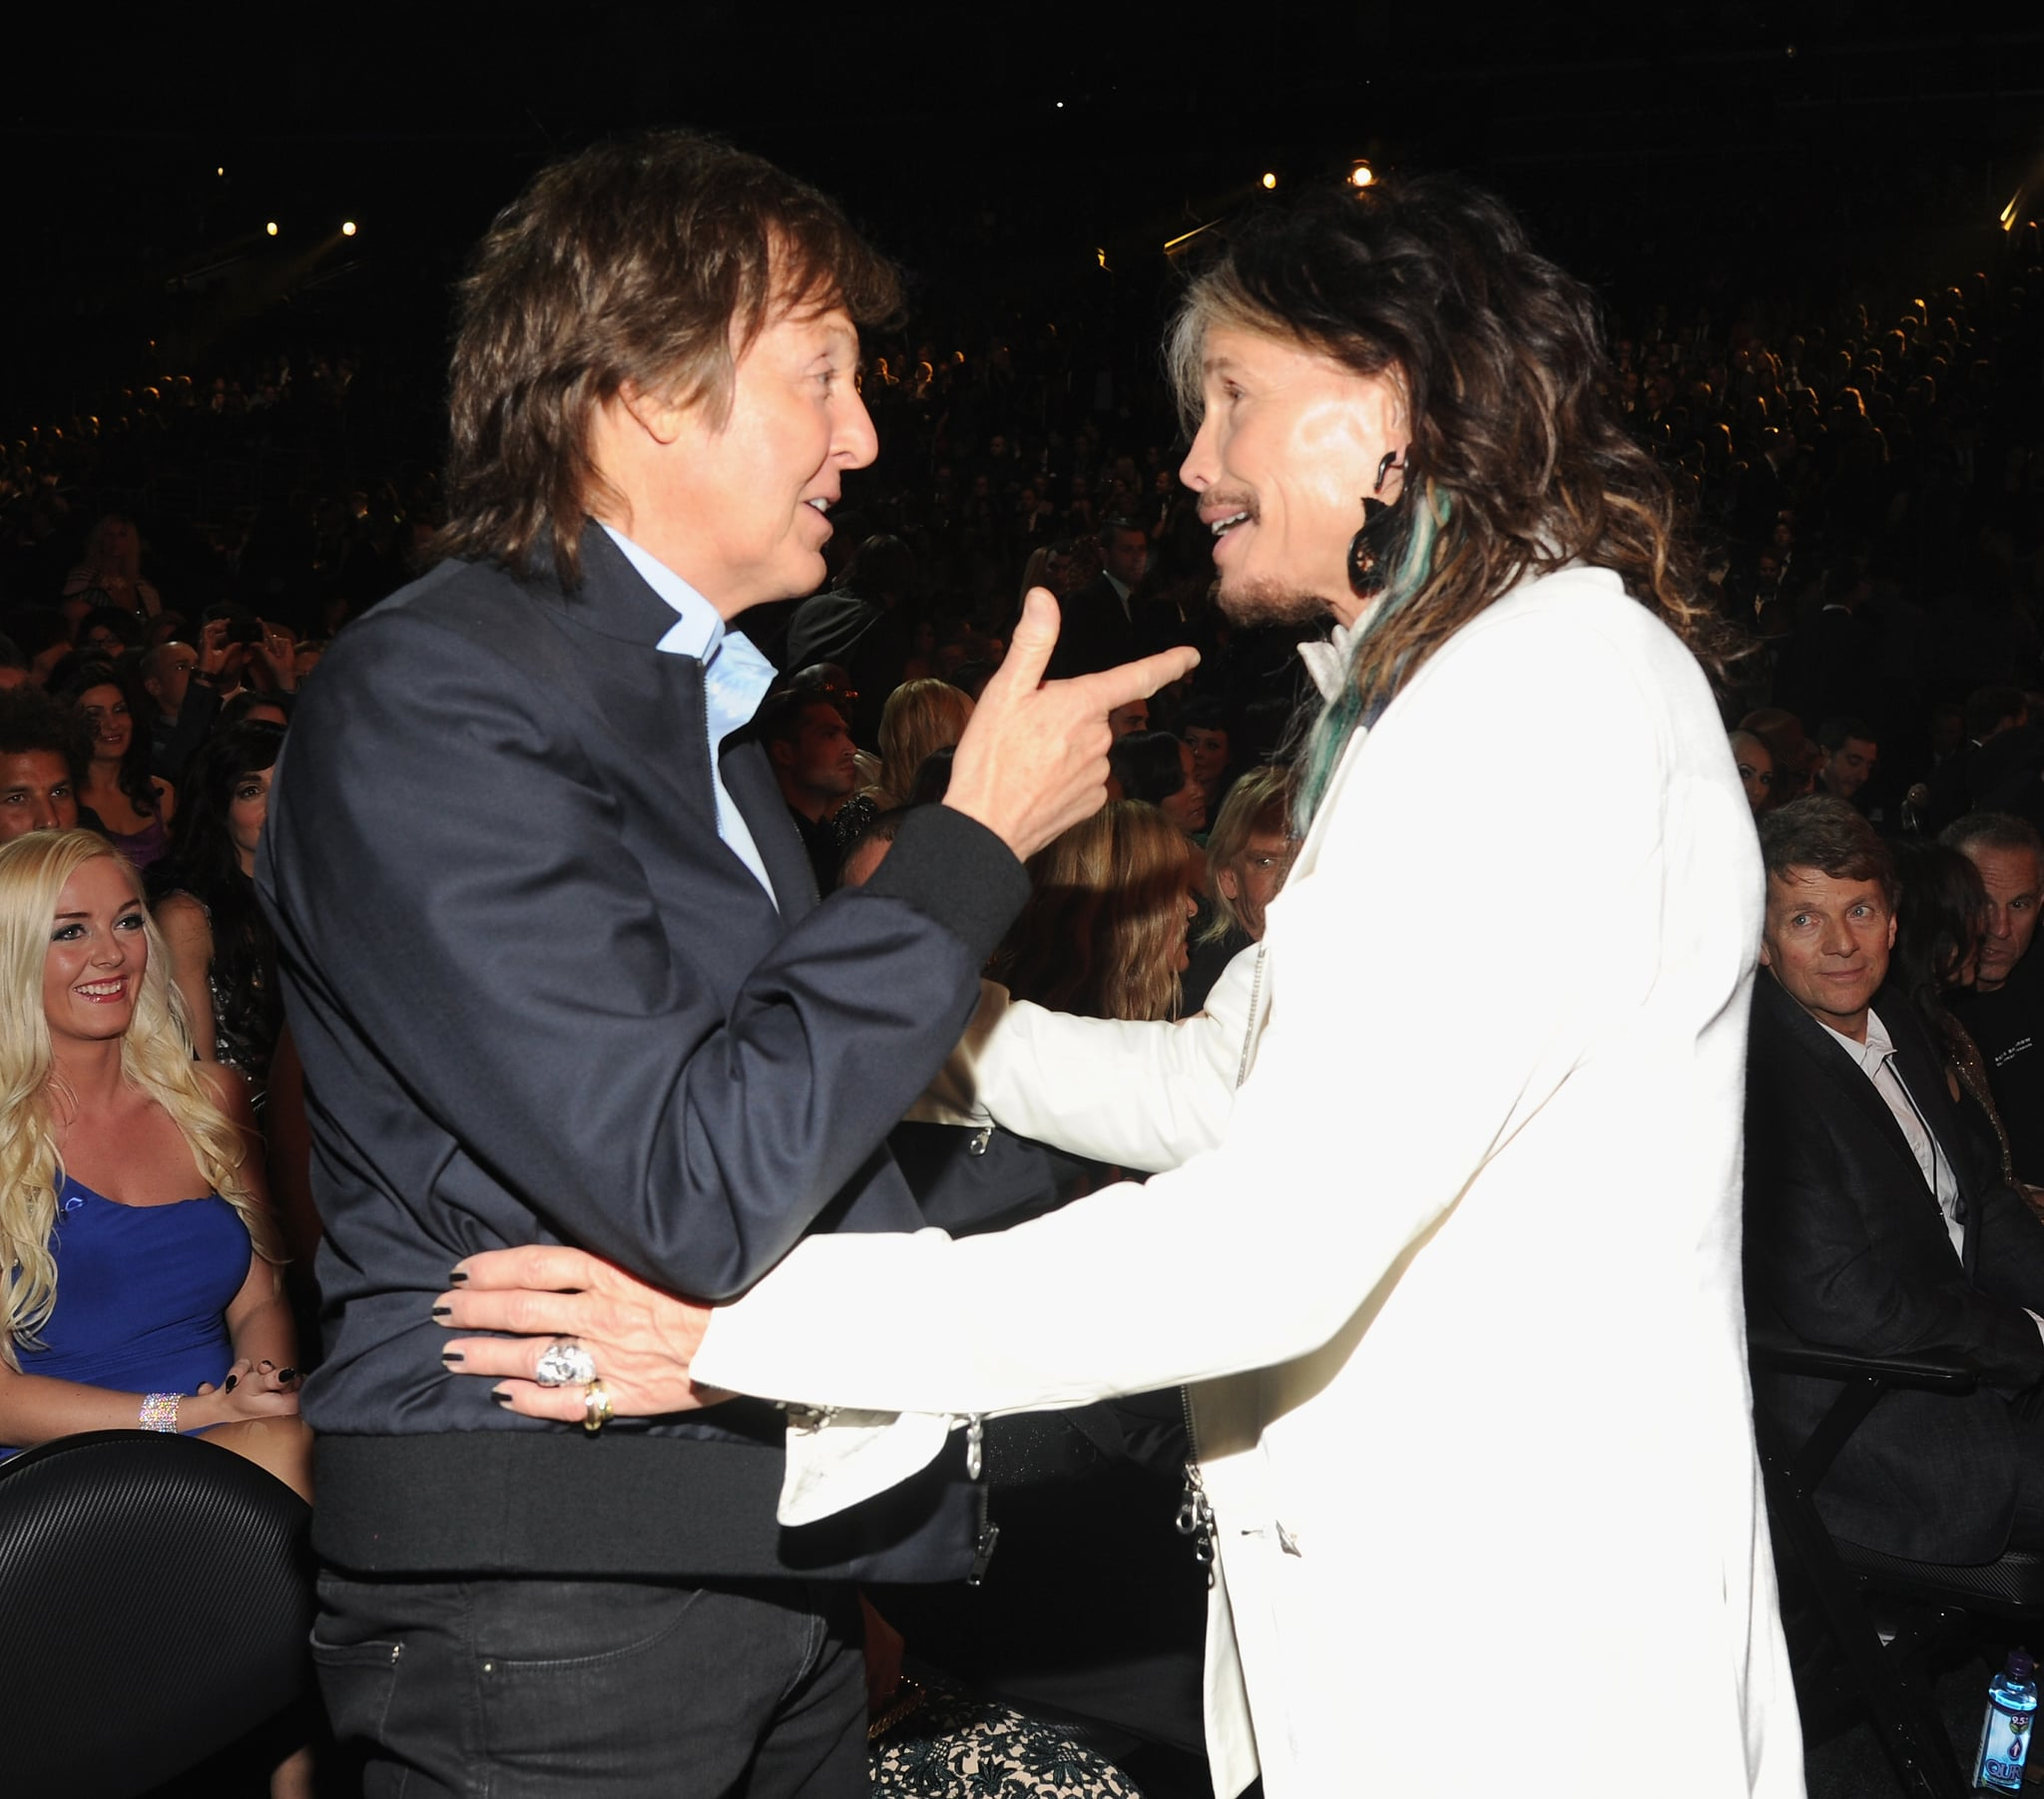 Paul McCartney chatted with Steven Tyler during a commercial break.